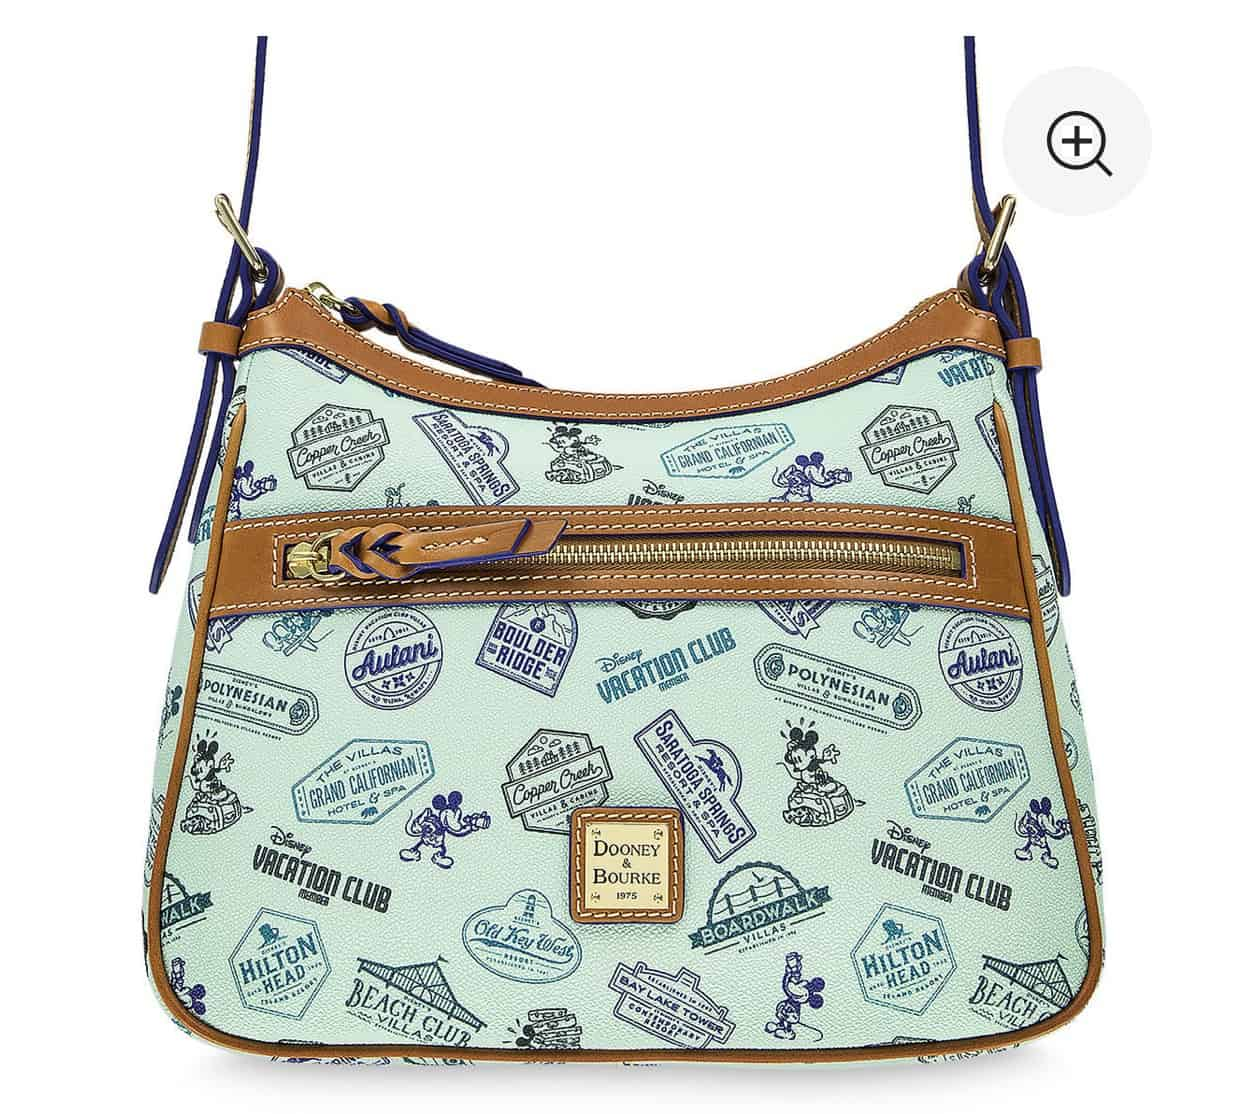 Dooney and Bourke Disney Bags 4